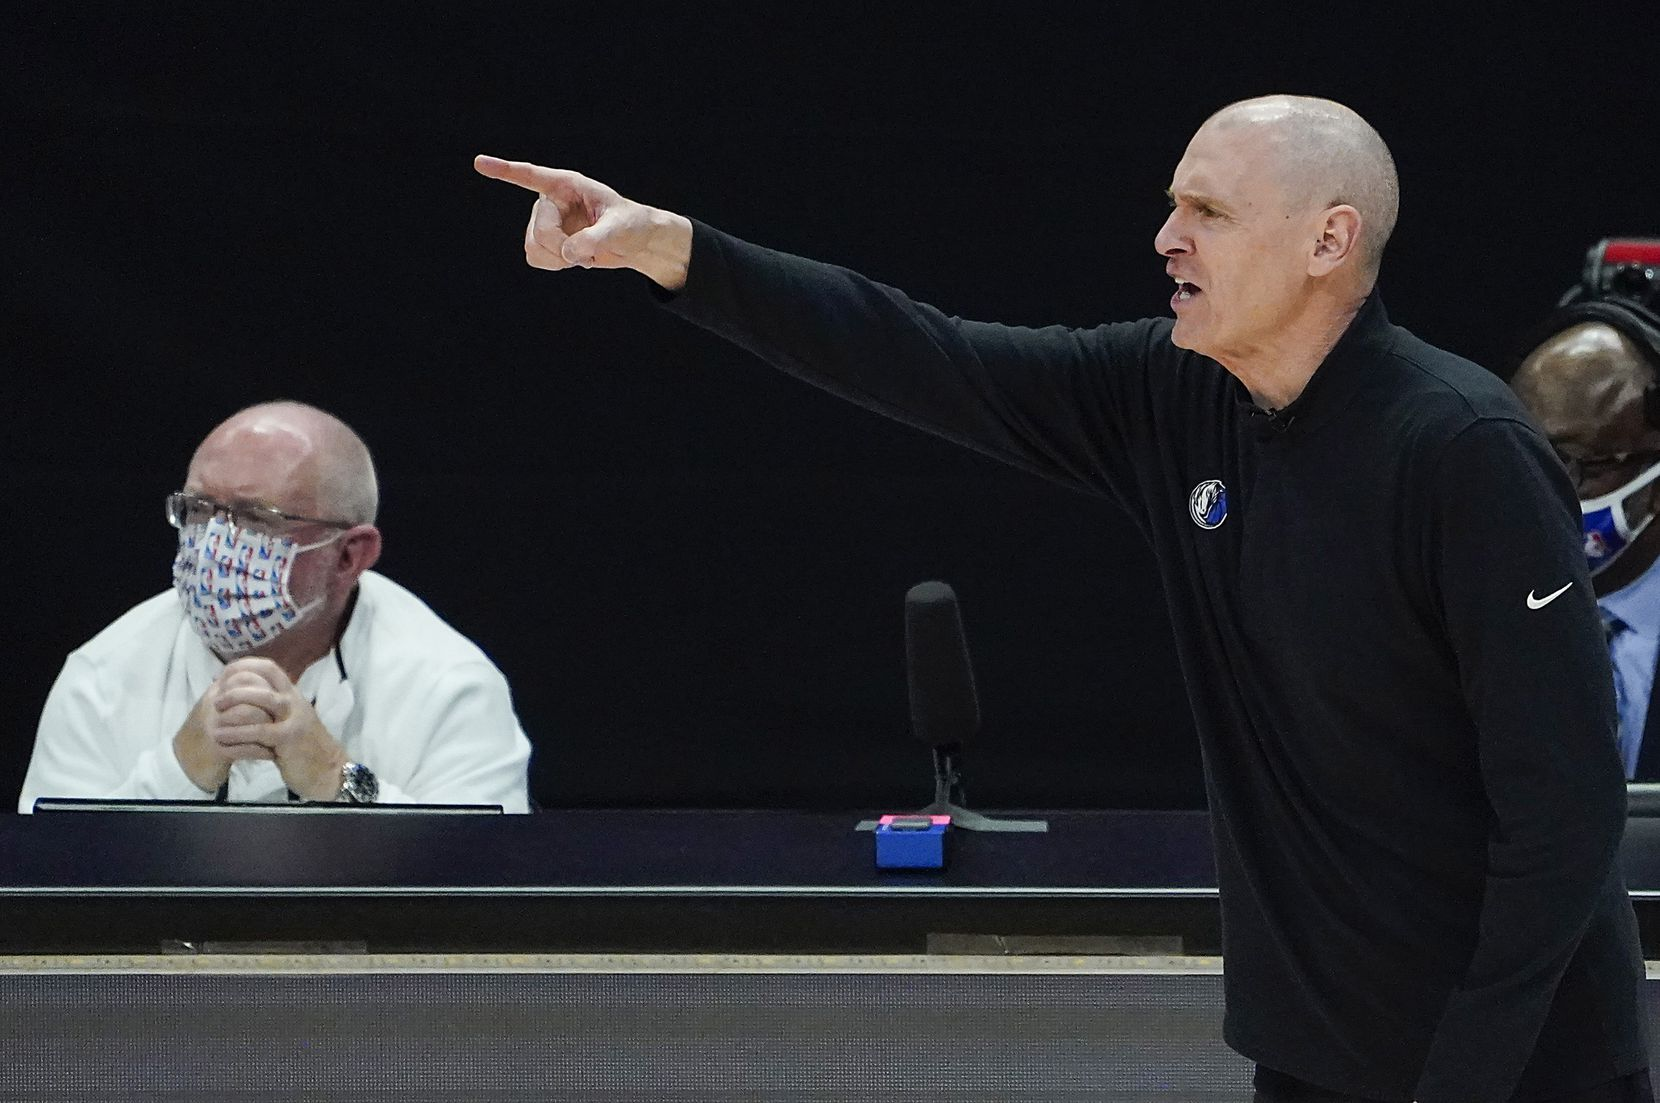 Dallas Mavericks head coach Rick Carlisle directs his team during the third quarter of an NBA playoff basketball game against the LA Clippers at the Staples Center on Wednesday, June 2, 2021, in Los Angeles.  (Smiley N. Pool/The Dallas Morning News)